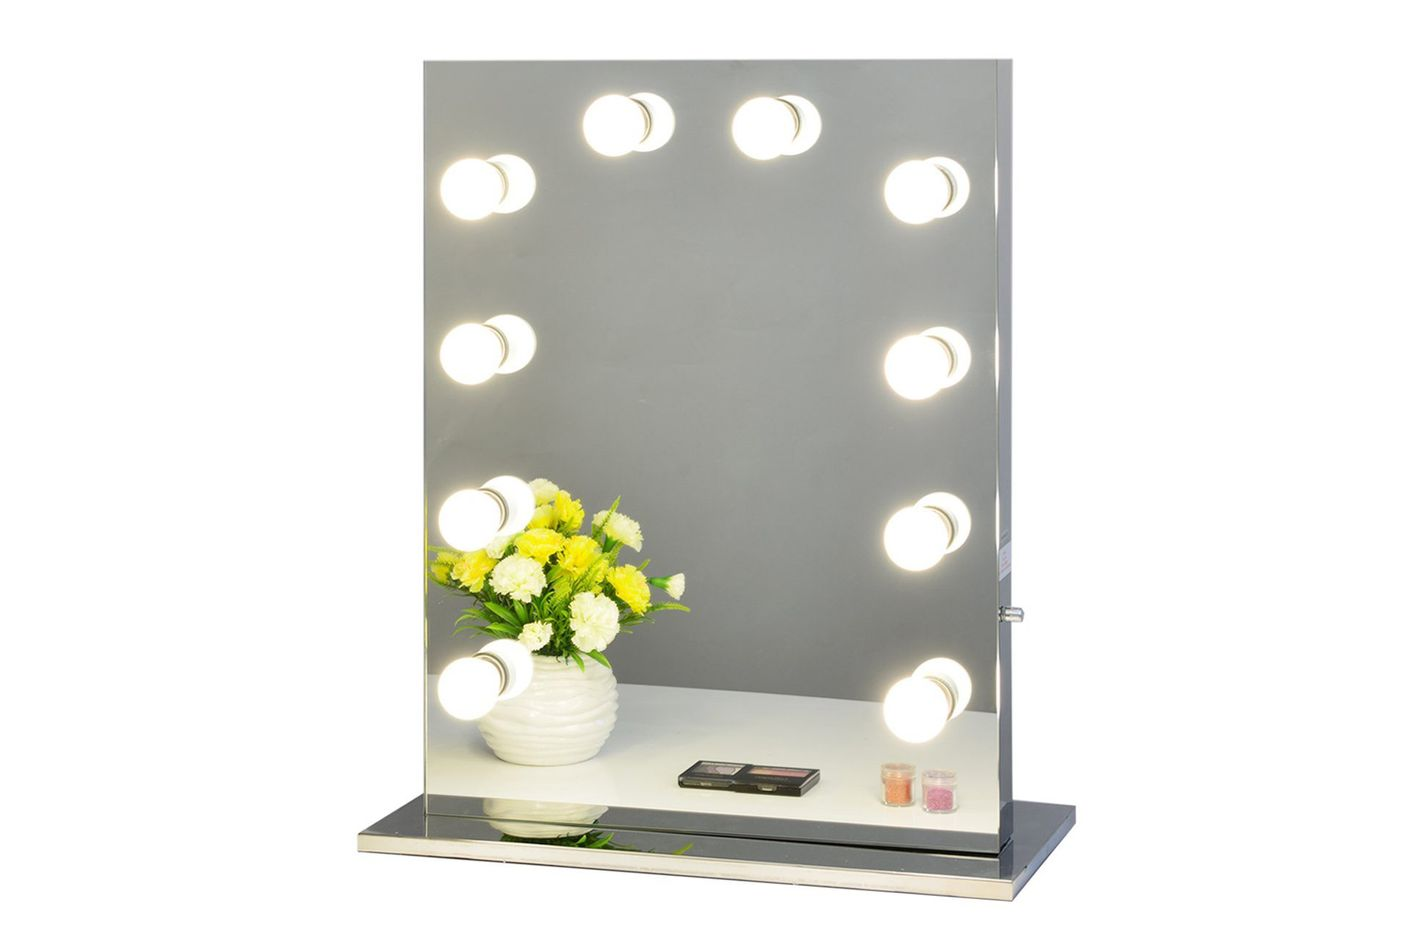 Vanity Light Makeup Mirror : 11 Best Vanity Makeup Mirrors Lights 2017: Lighted Mirrors